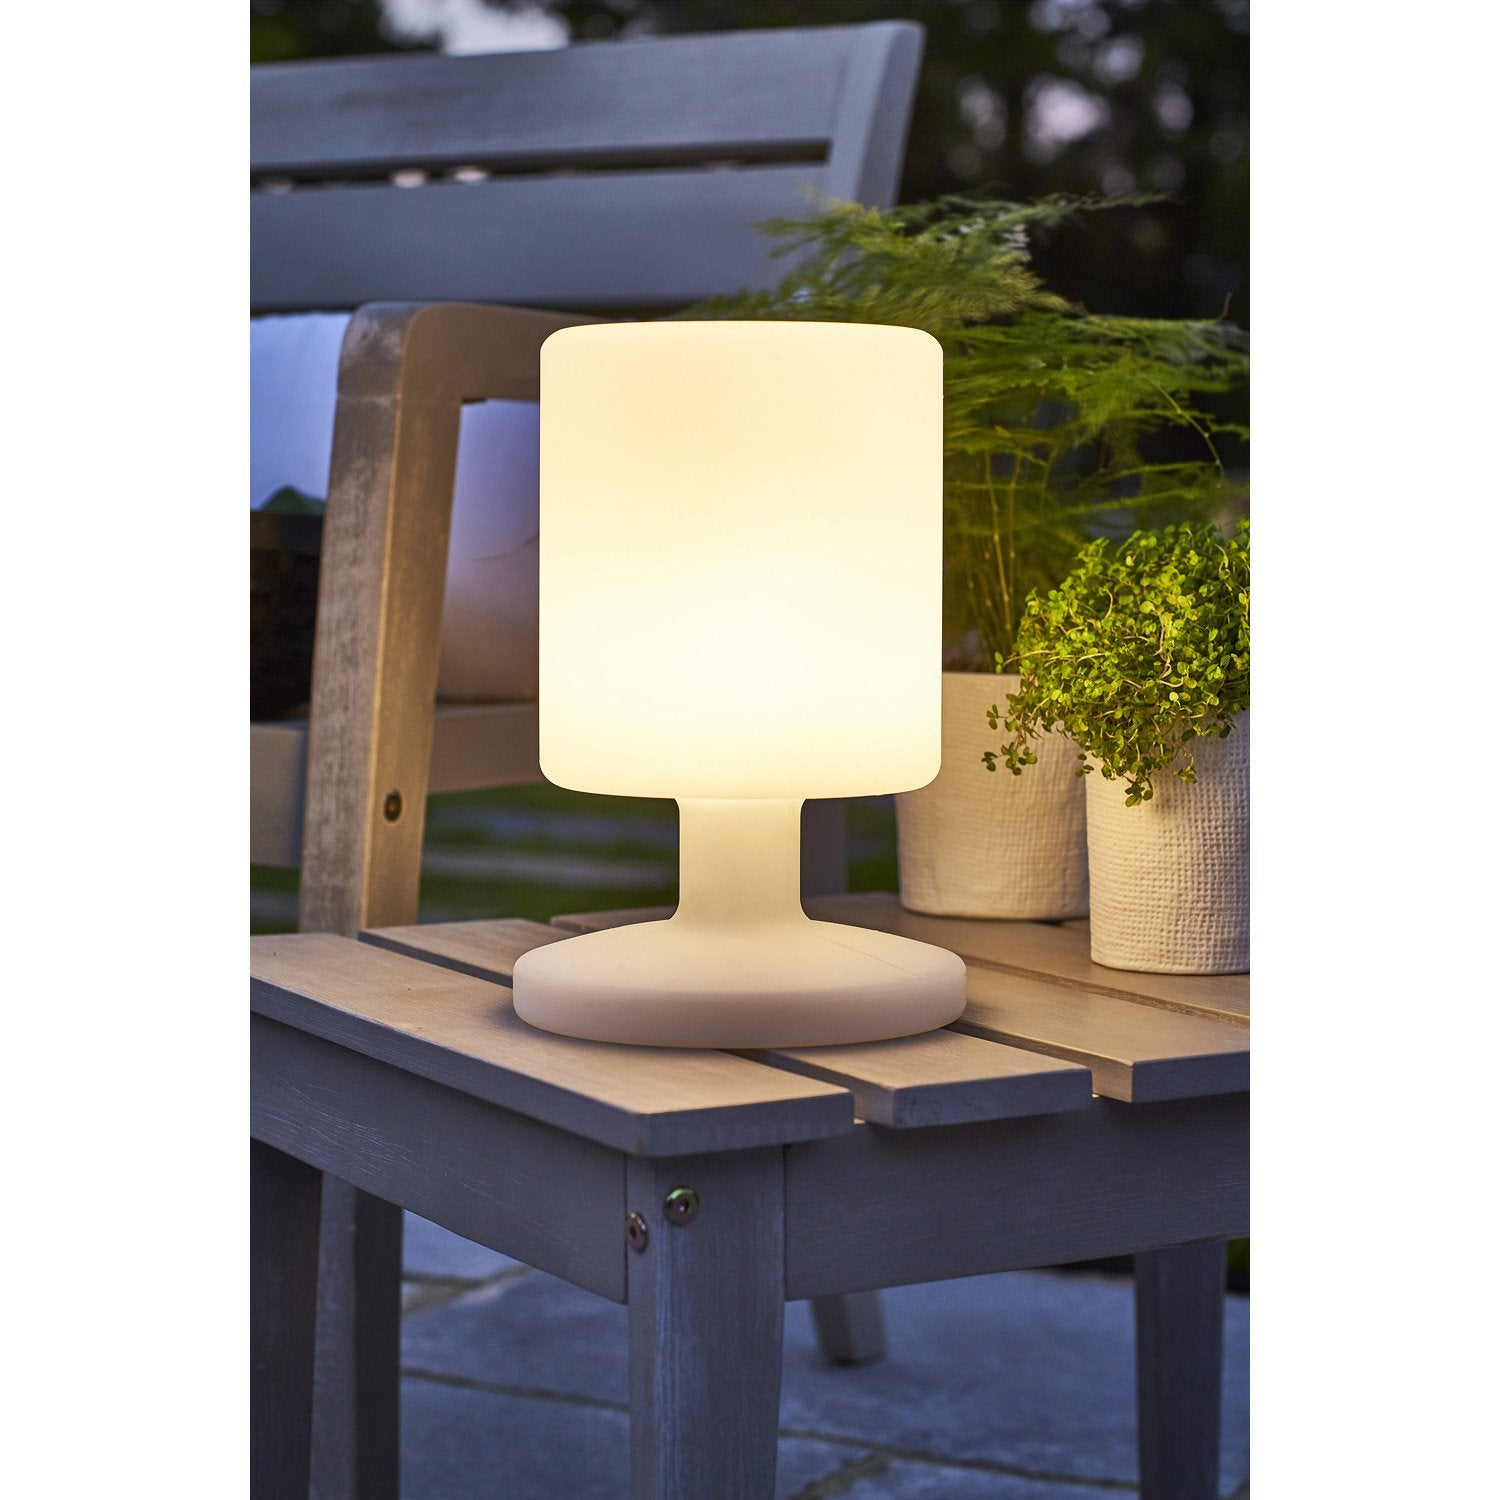 lampe de table ext rieure led int gr e 5 w 130 lm blanc